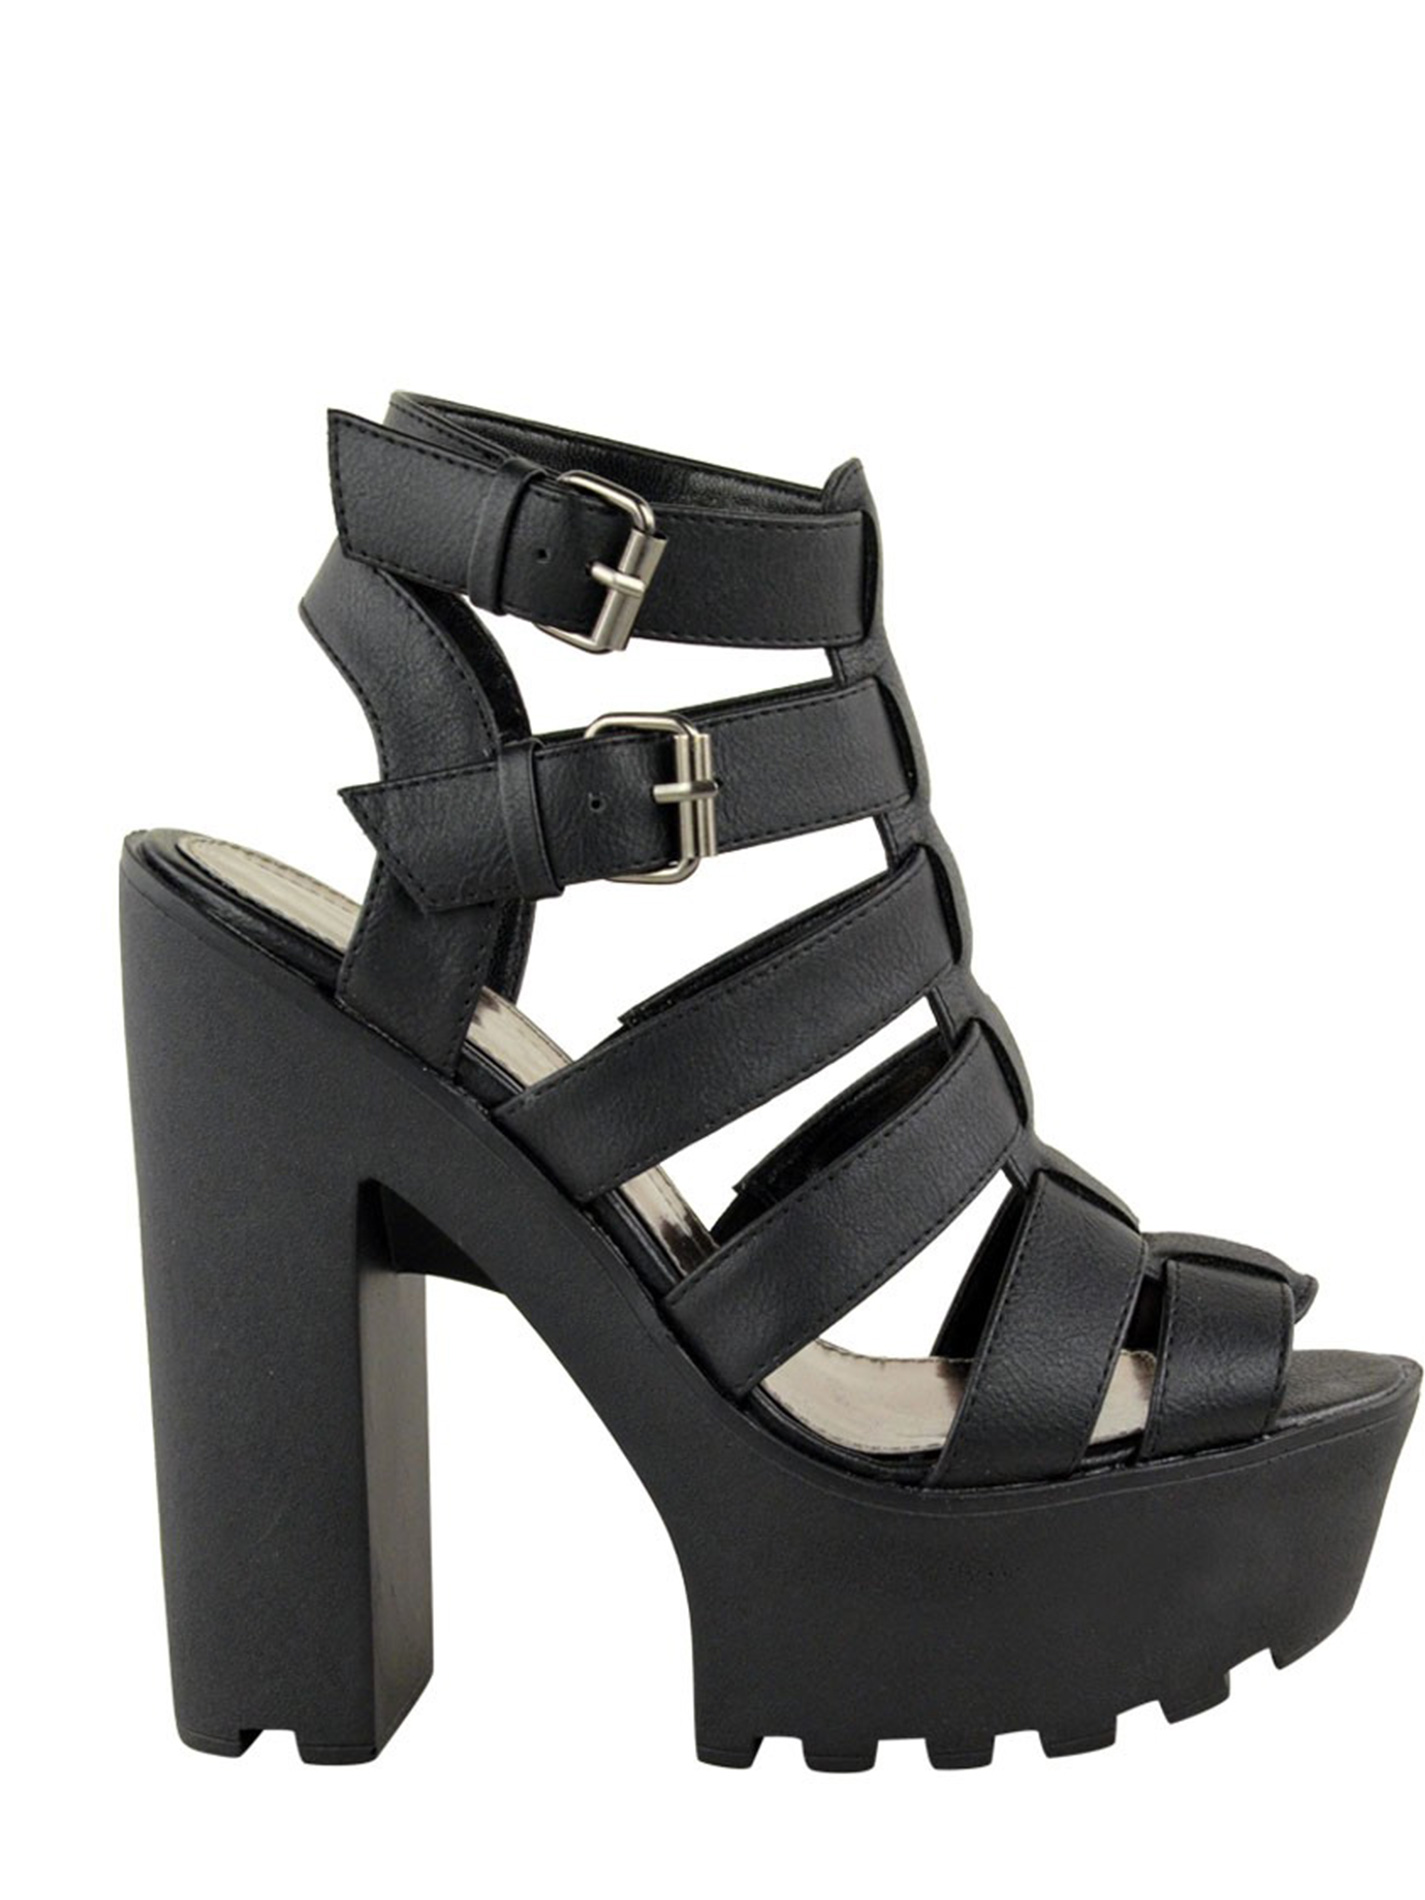 Pixie black cleated sole platforms